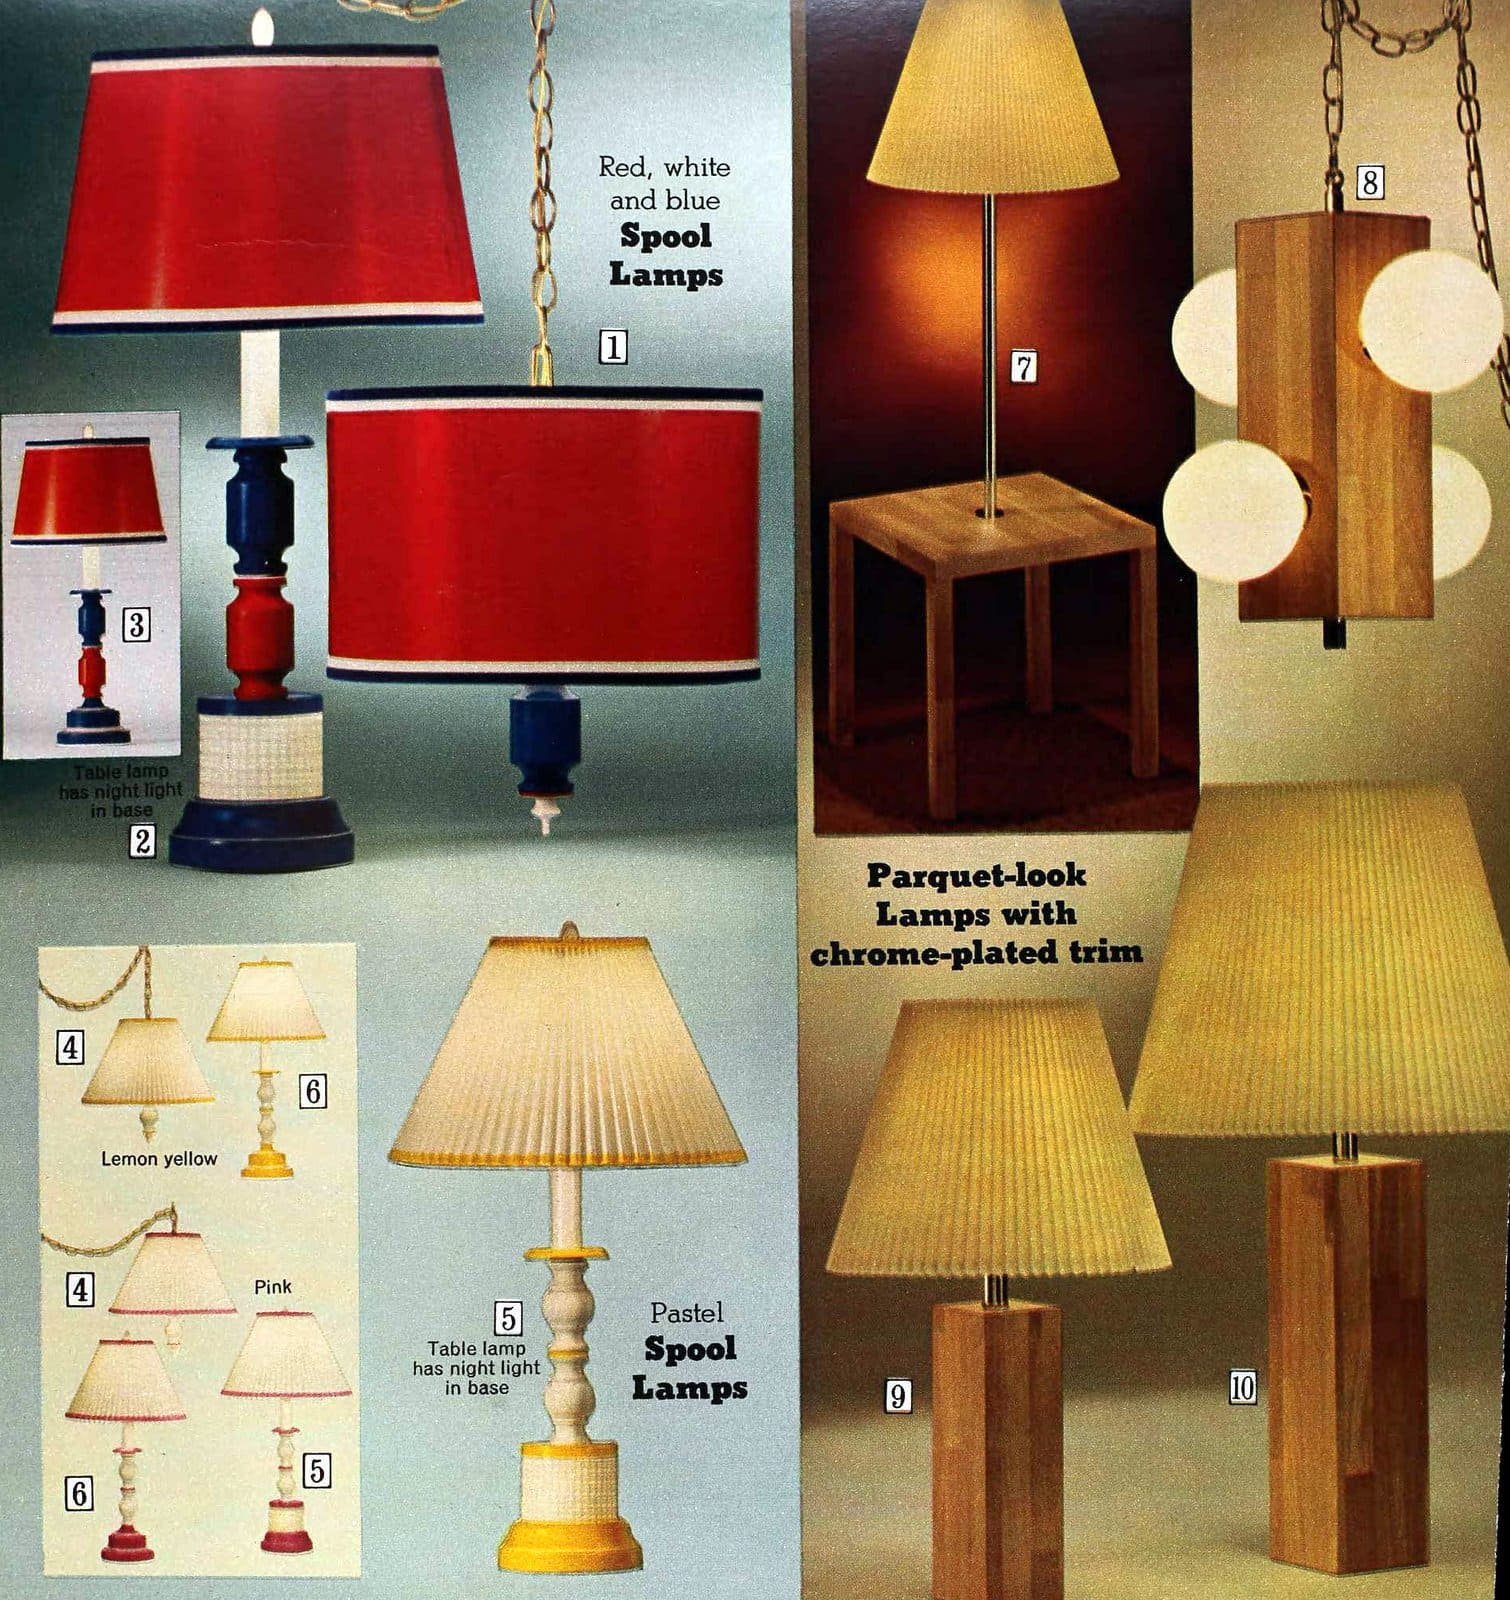 Vintage lamps and retro shades (1973)